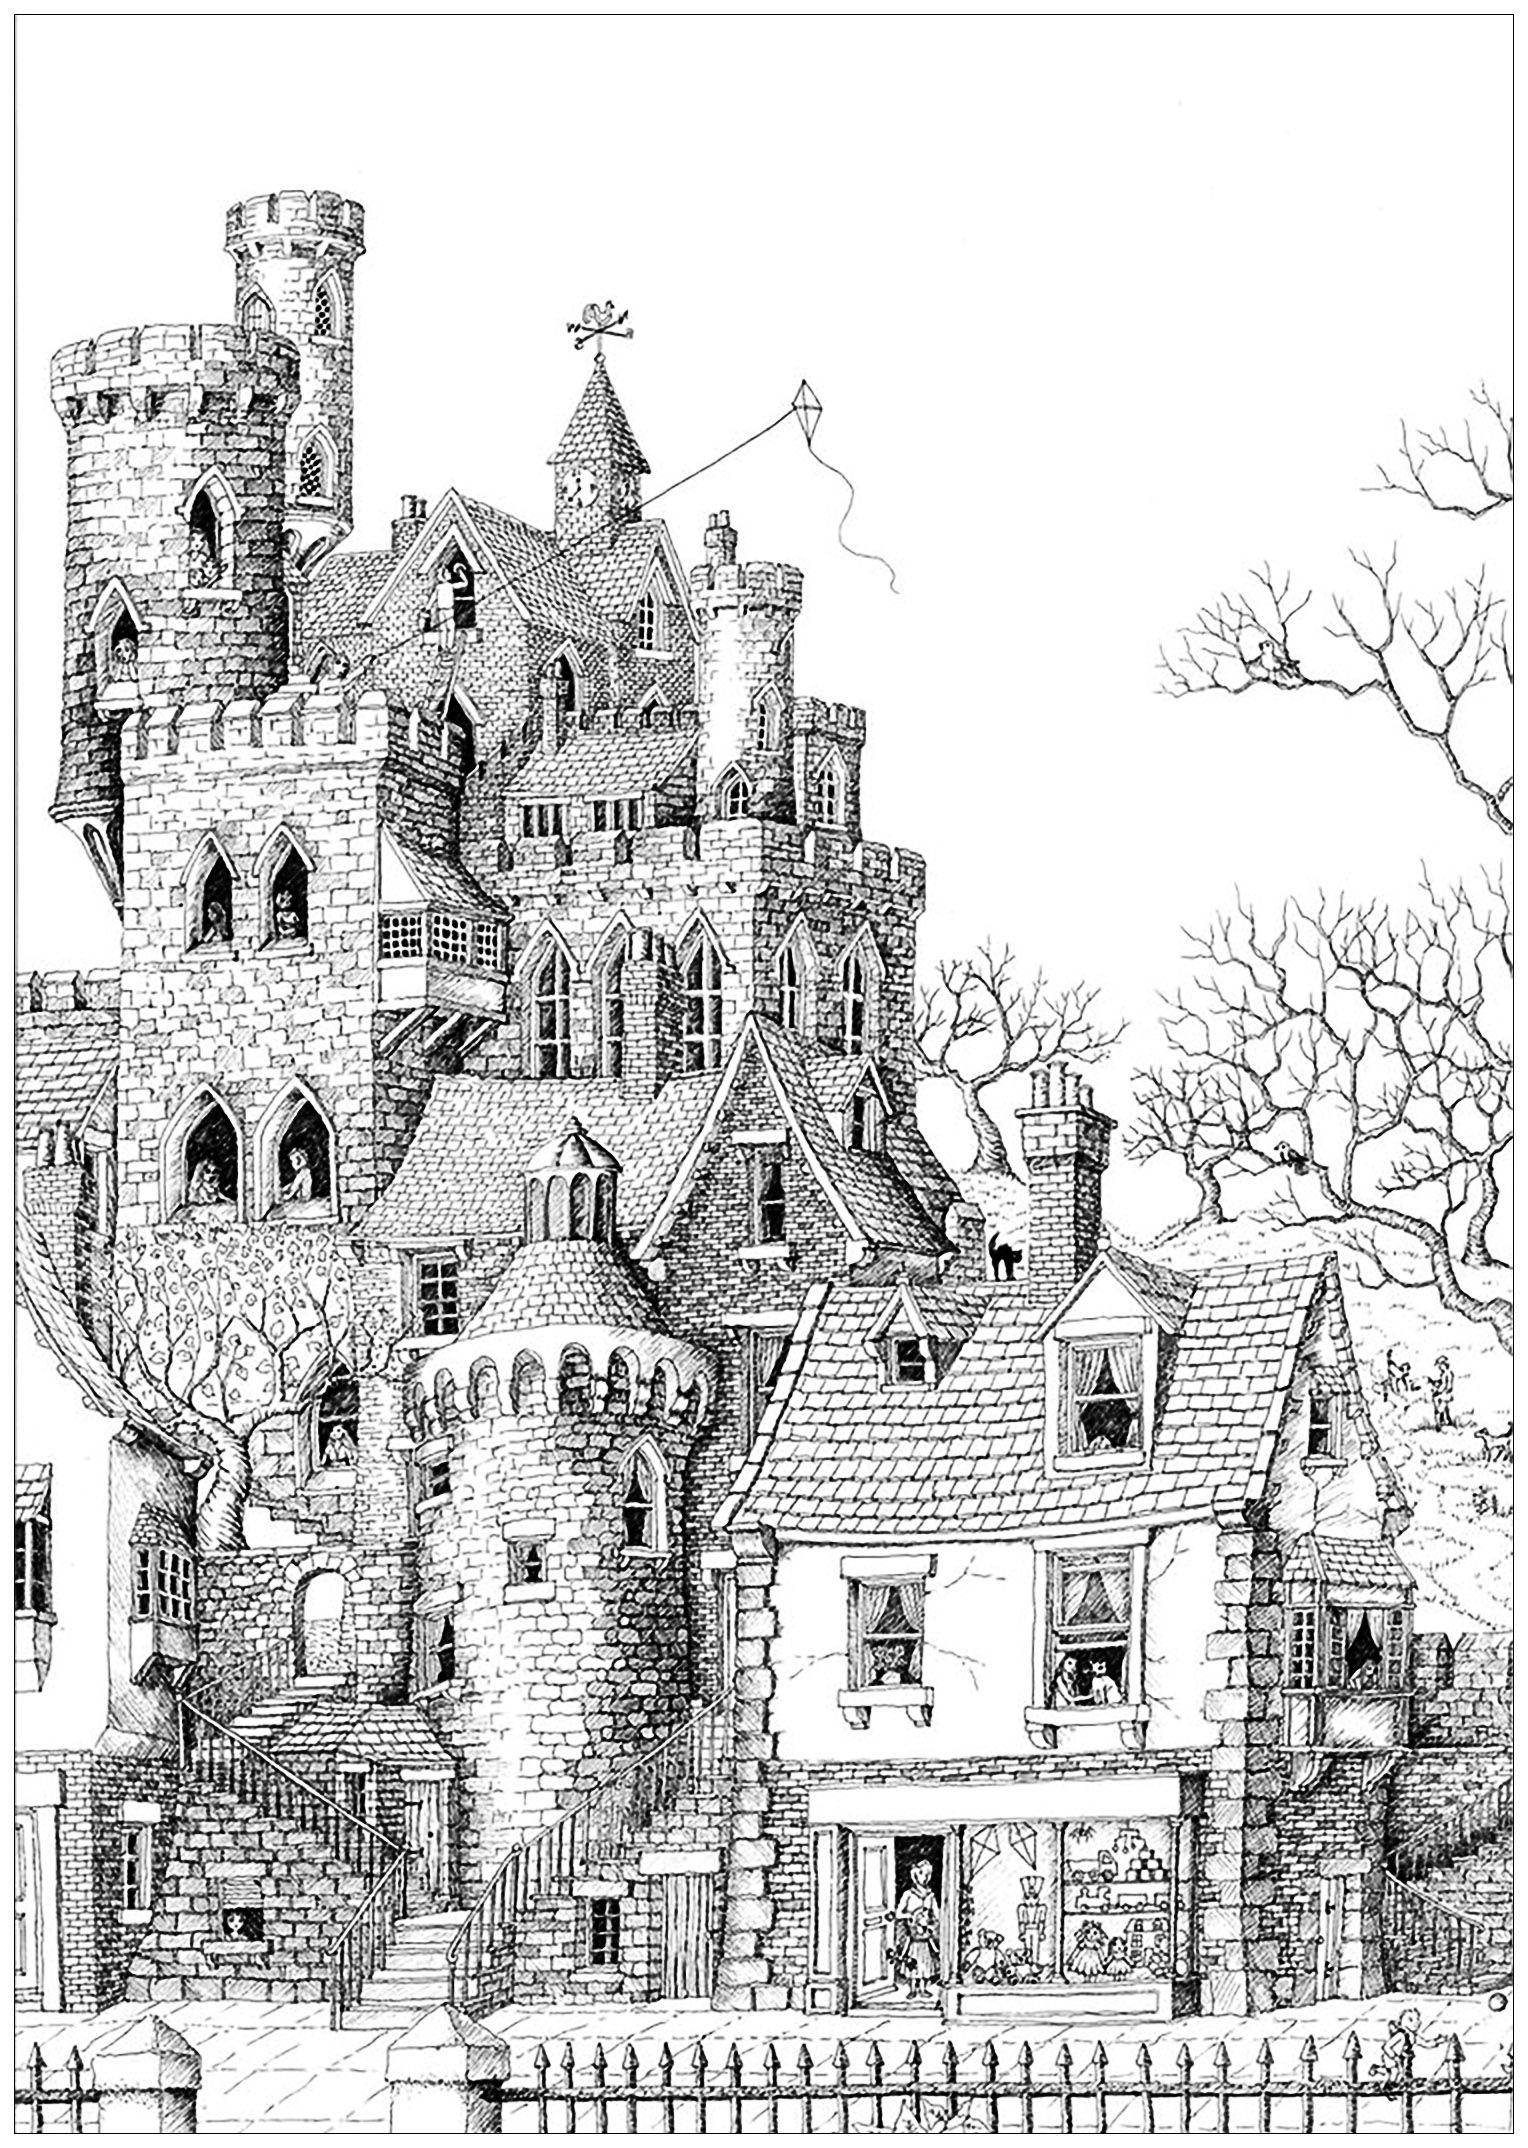 architecture coloring book pages | An impressive castle in a typical village, From the ...